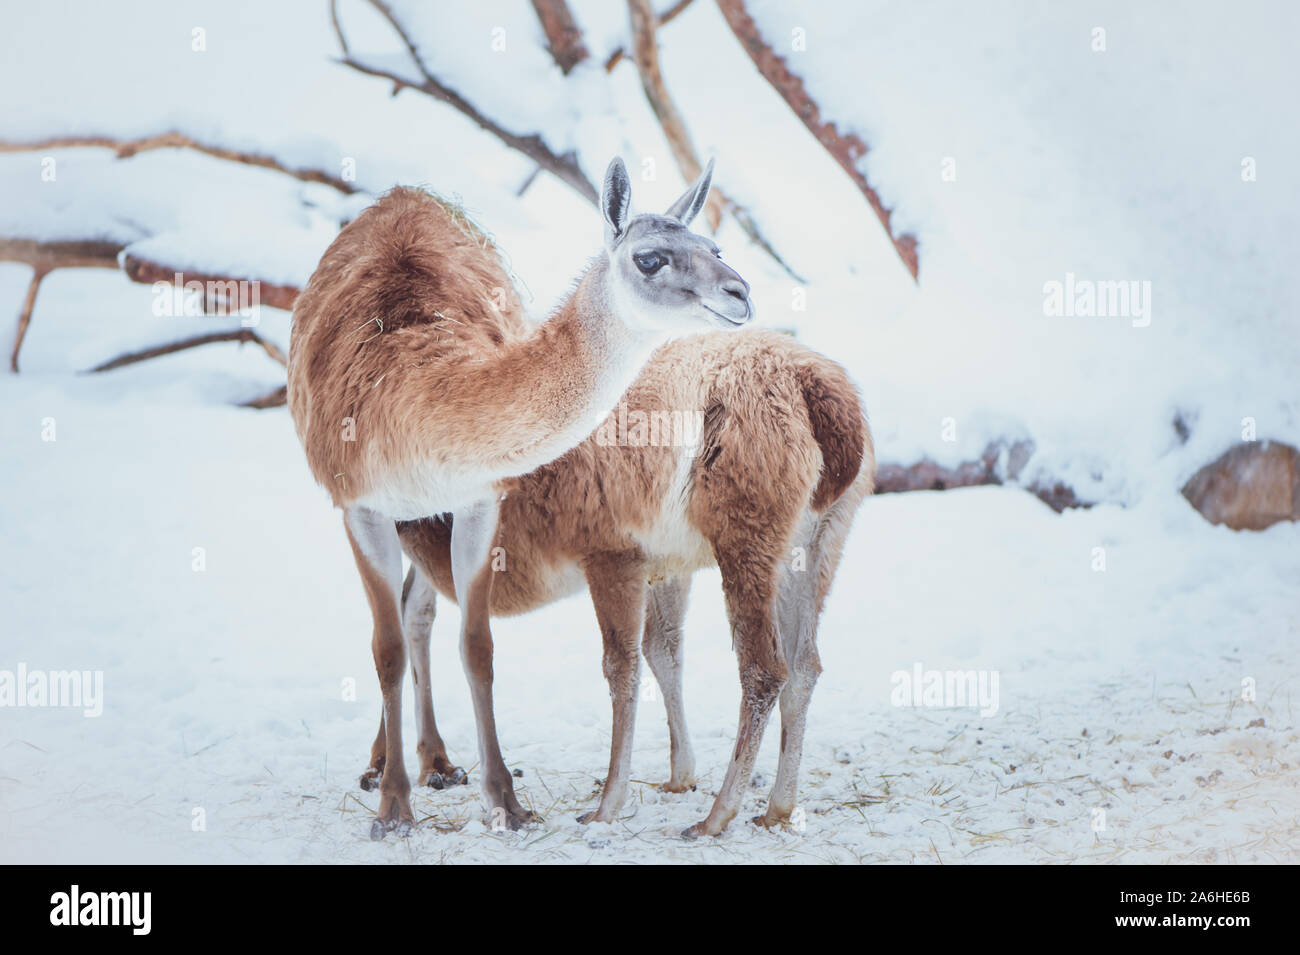 Two Guanacos, mother and baby on a natural winter background, portrait Stock Photo